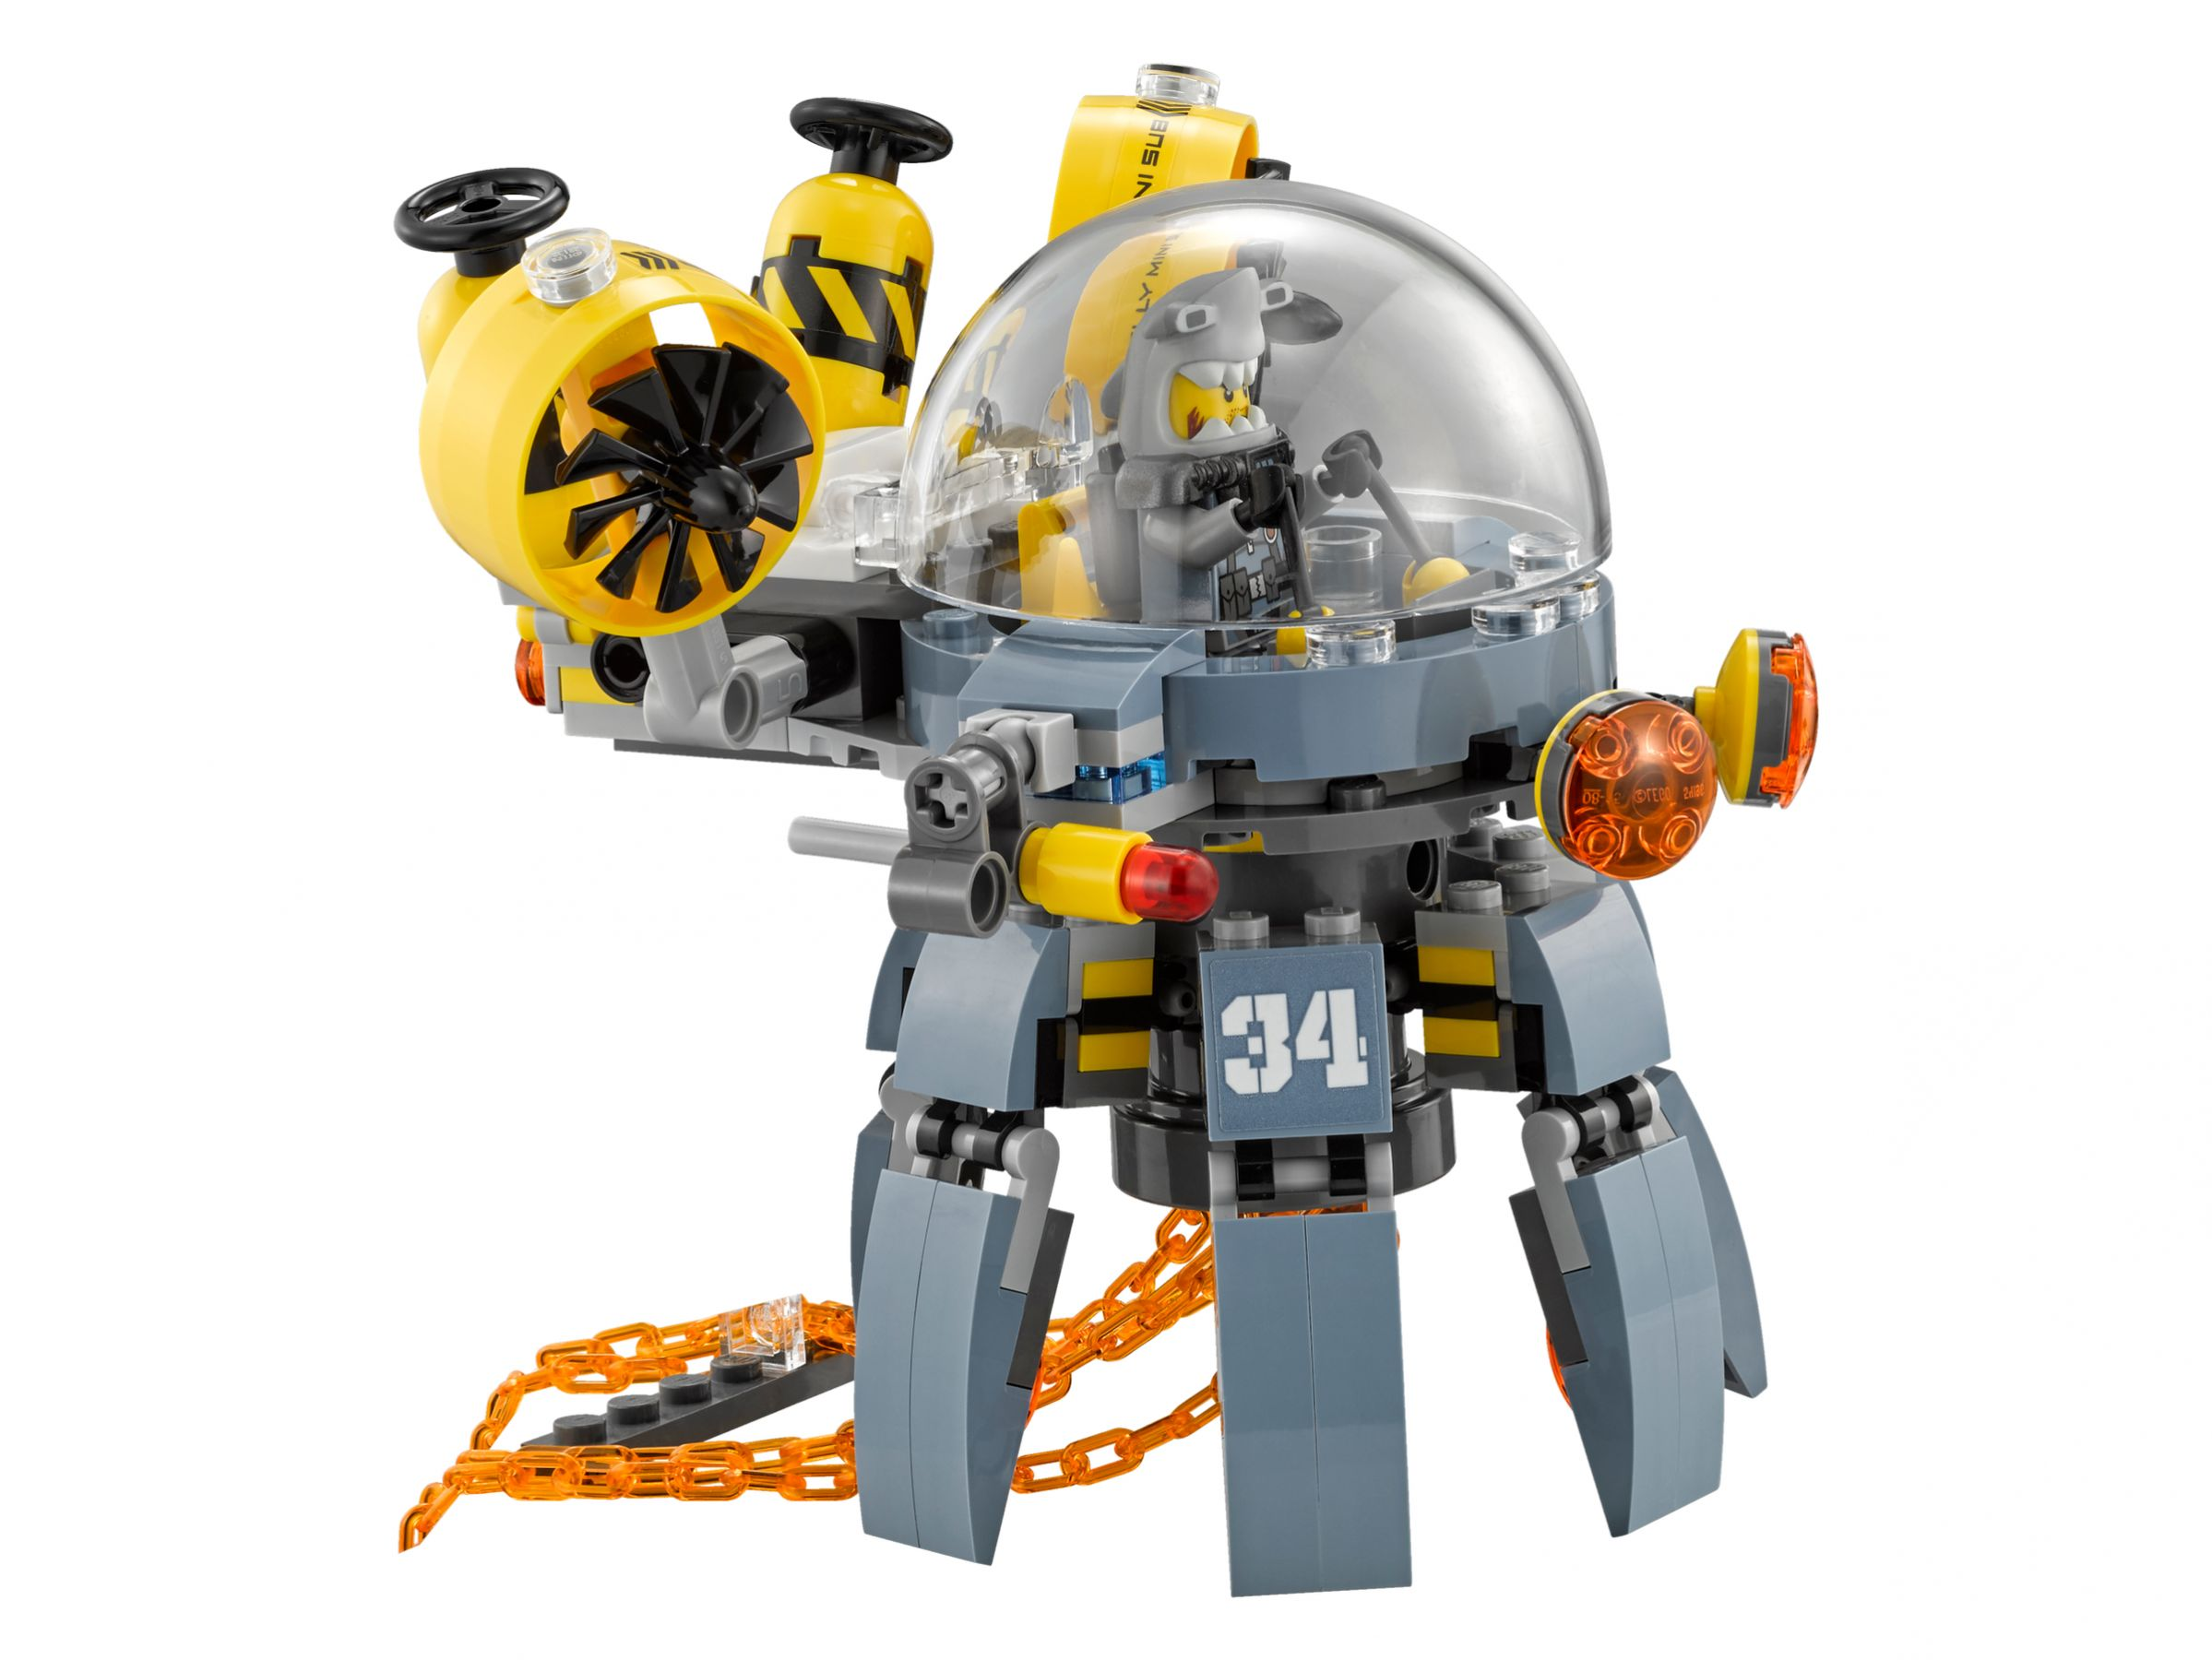 LEGO The LEGO Ninjago Movie 70610 Turbo Qualle LEGO_70610_alt6.jpg